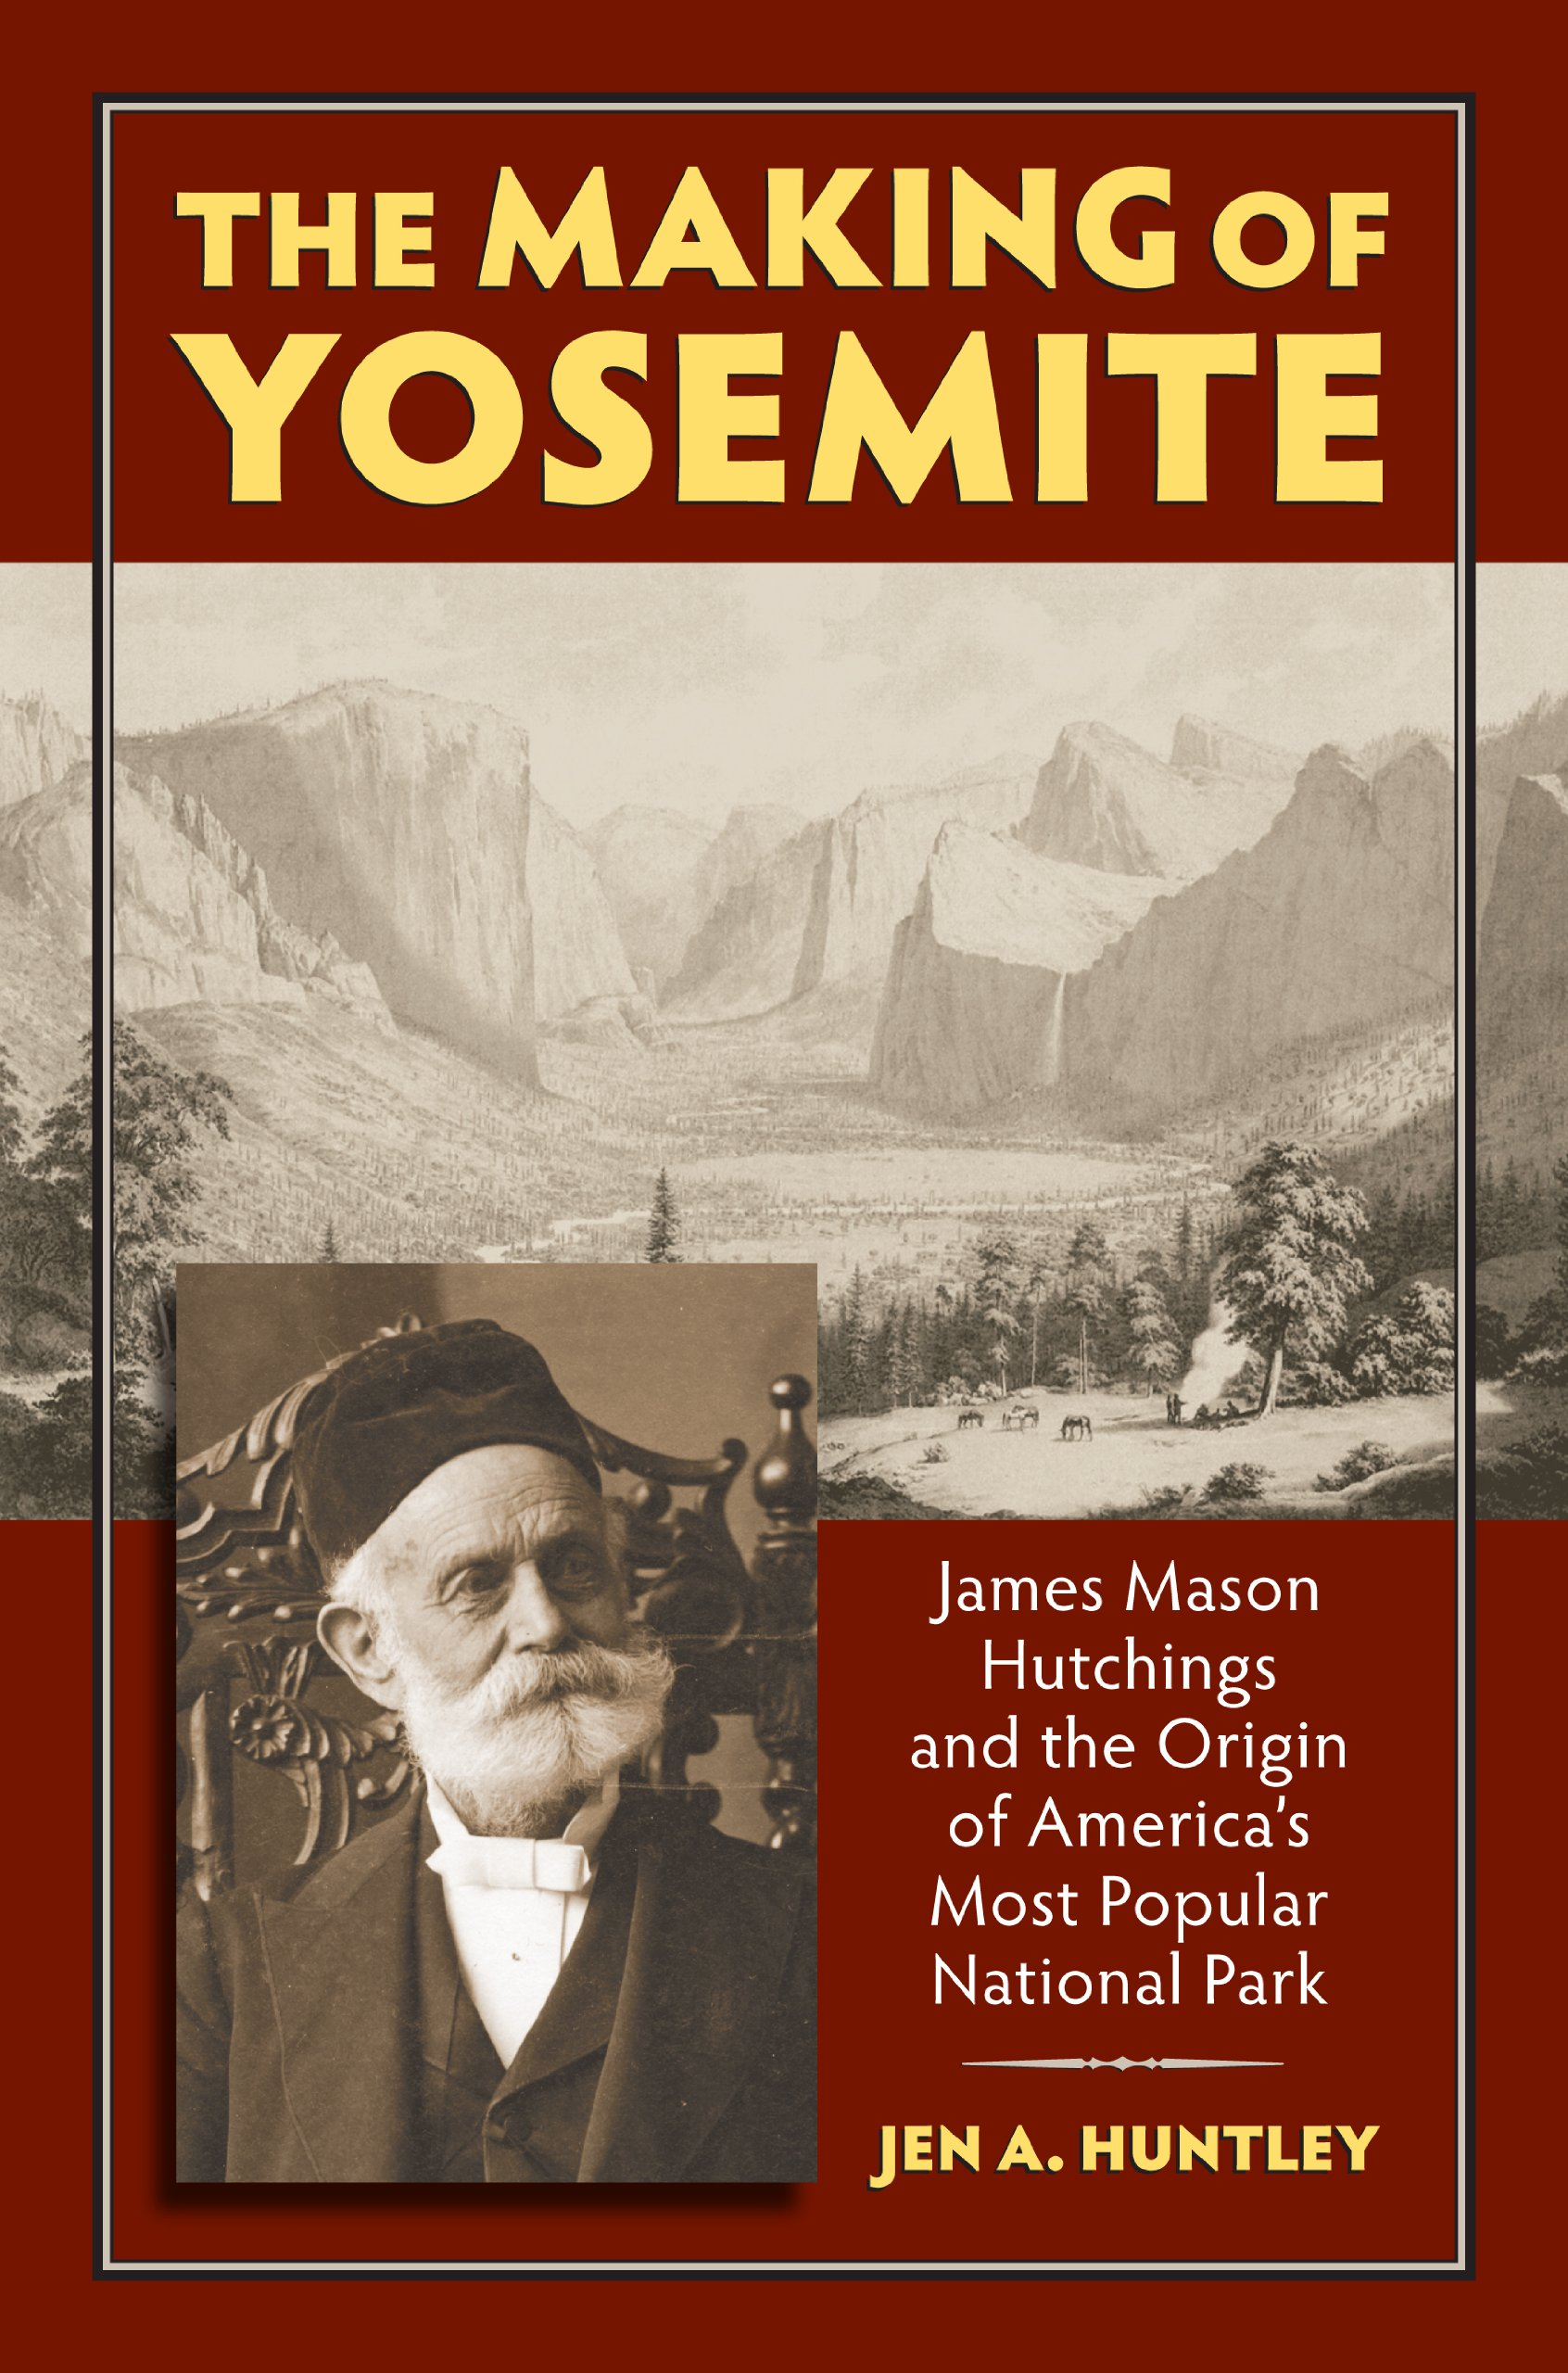 Download The Making of Yosemite: James Mason Hutchings and the Origin of America's Most Popular Park PDF